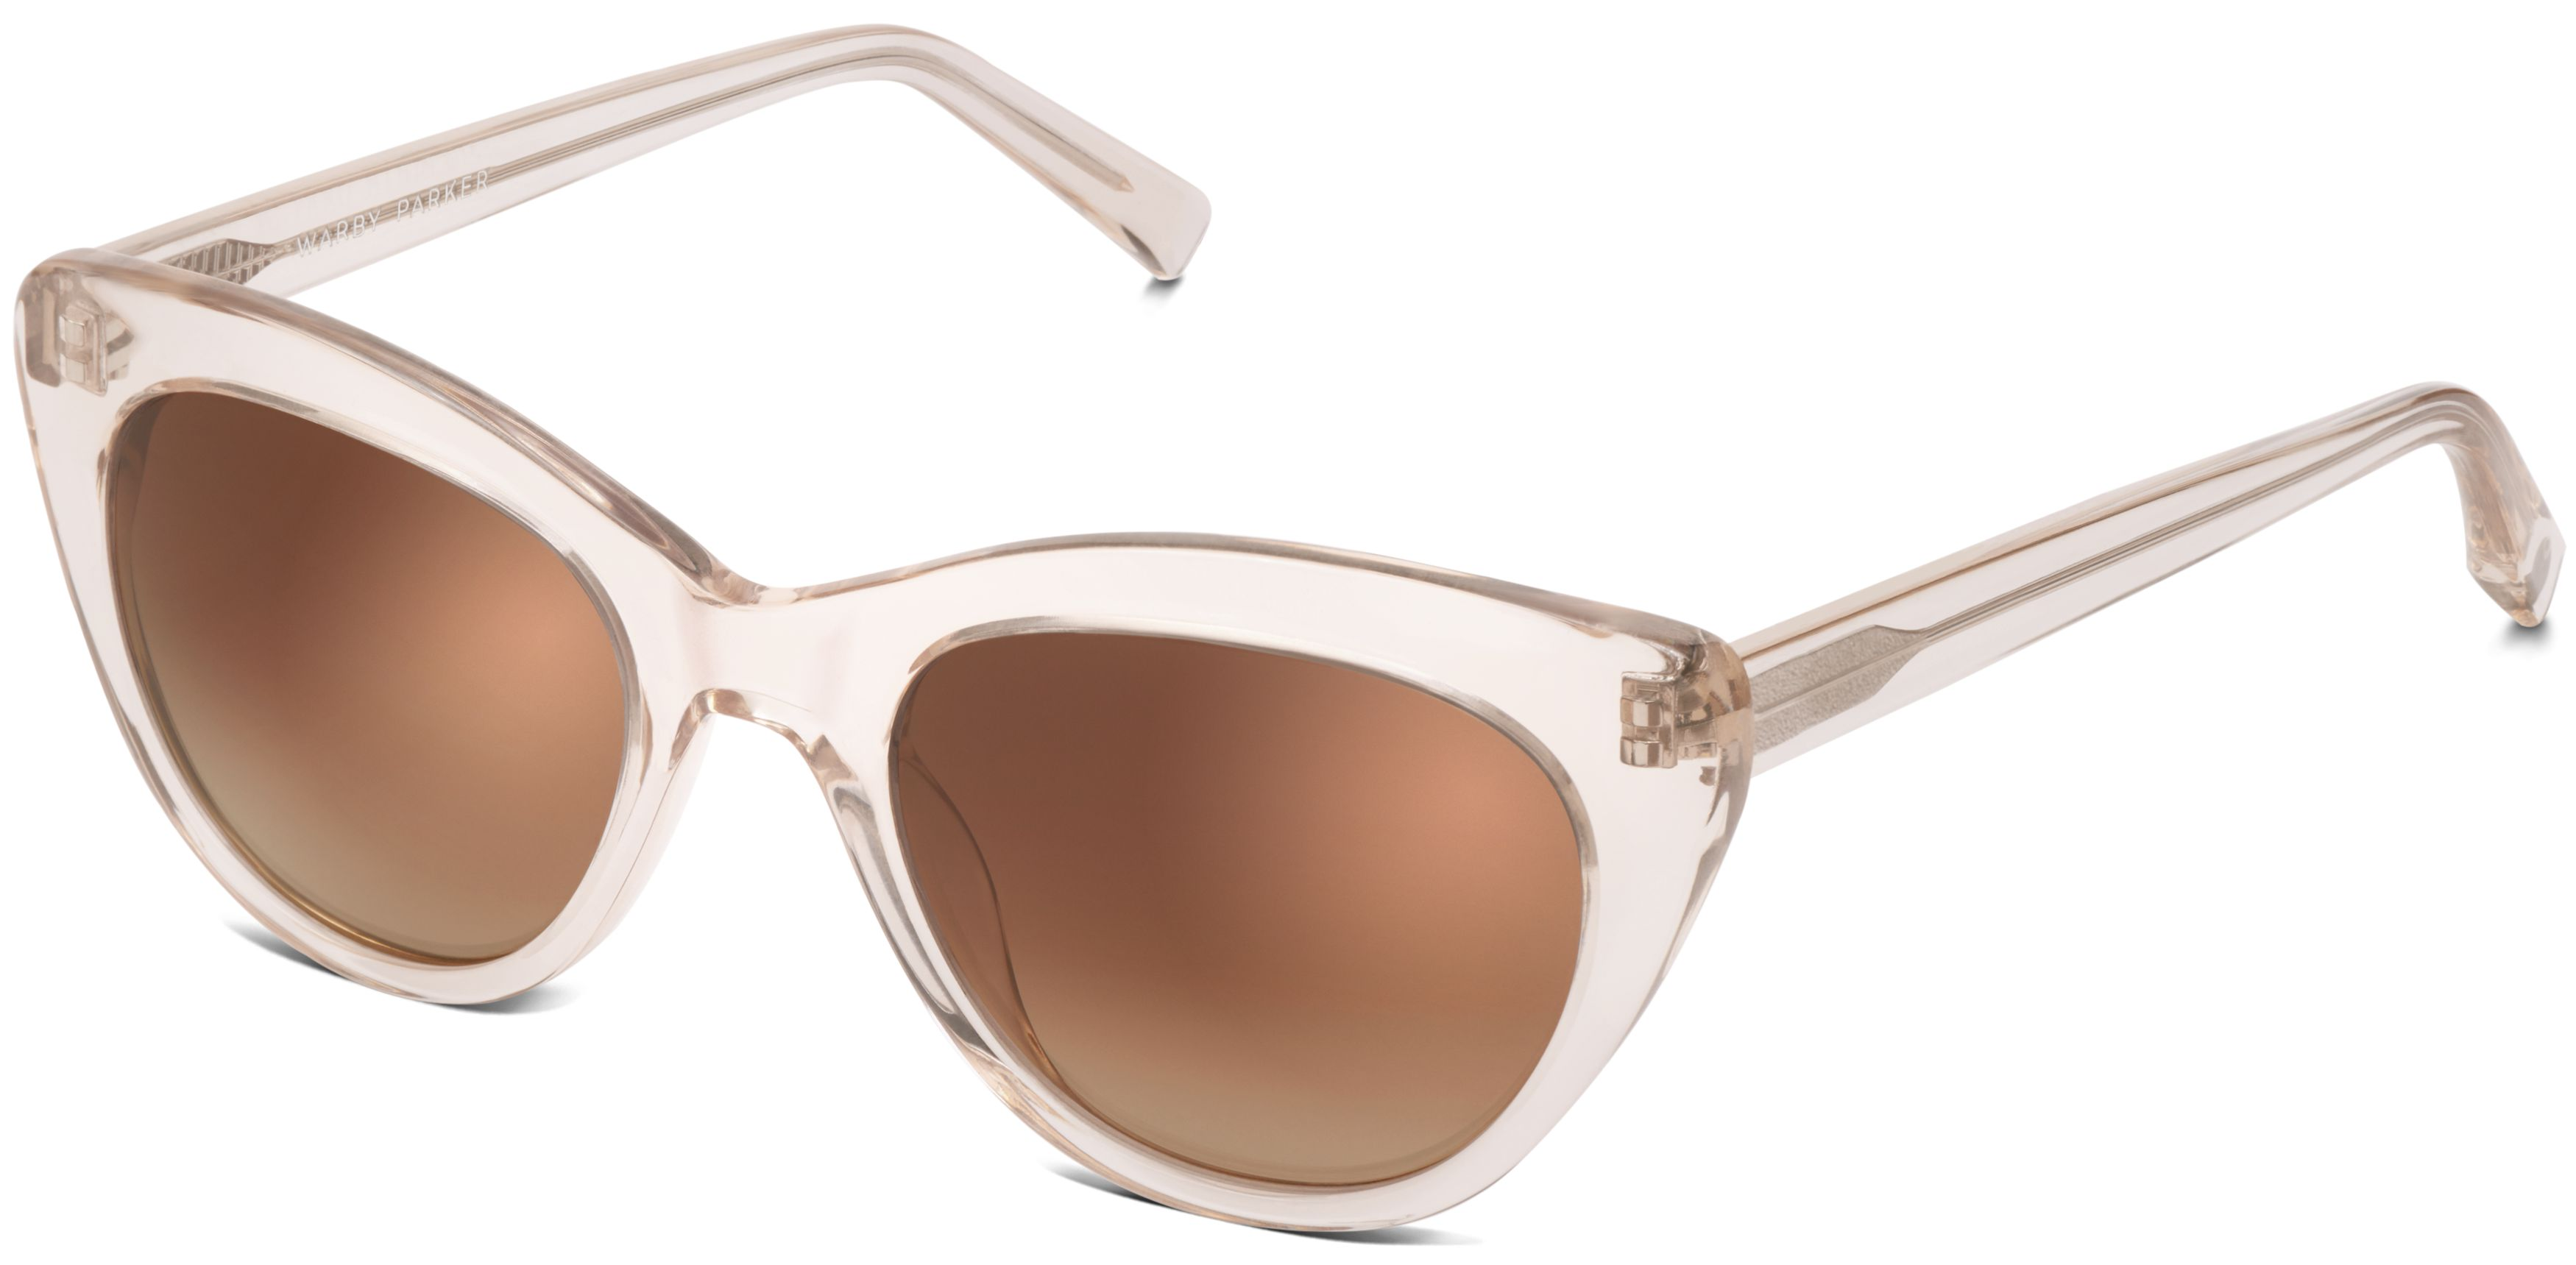 422a892296 Tilley Sunglasses in Grapefruit Soda with Amber Gradient lenses for Women